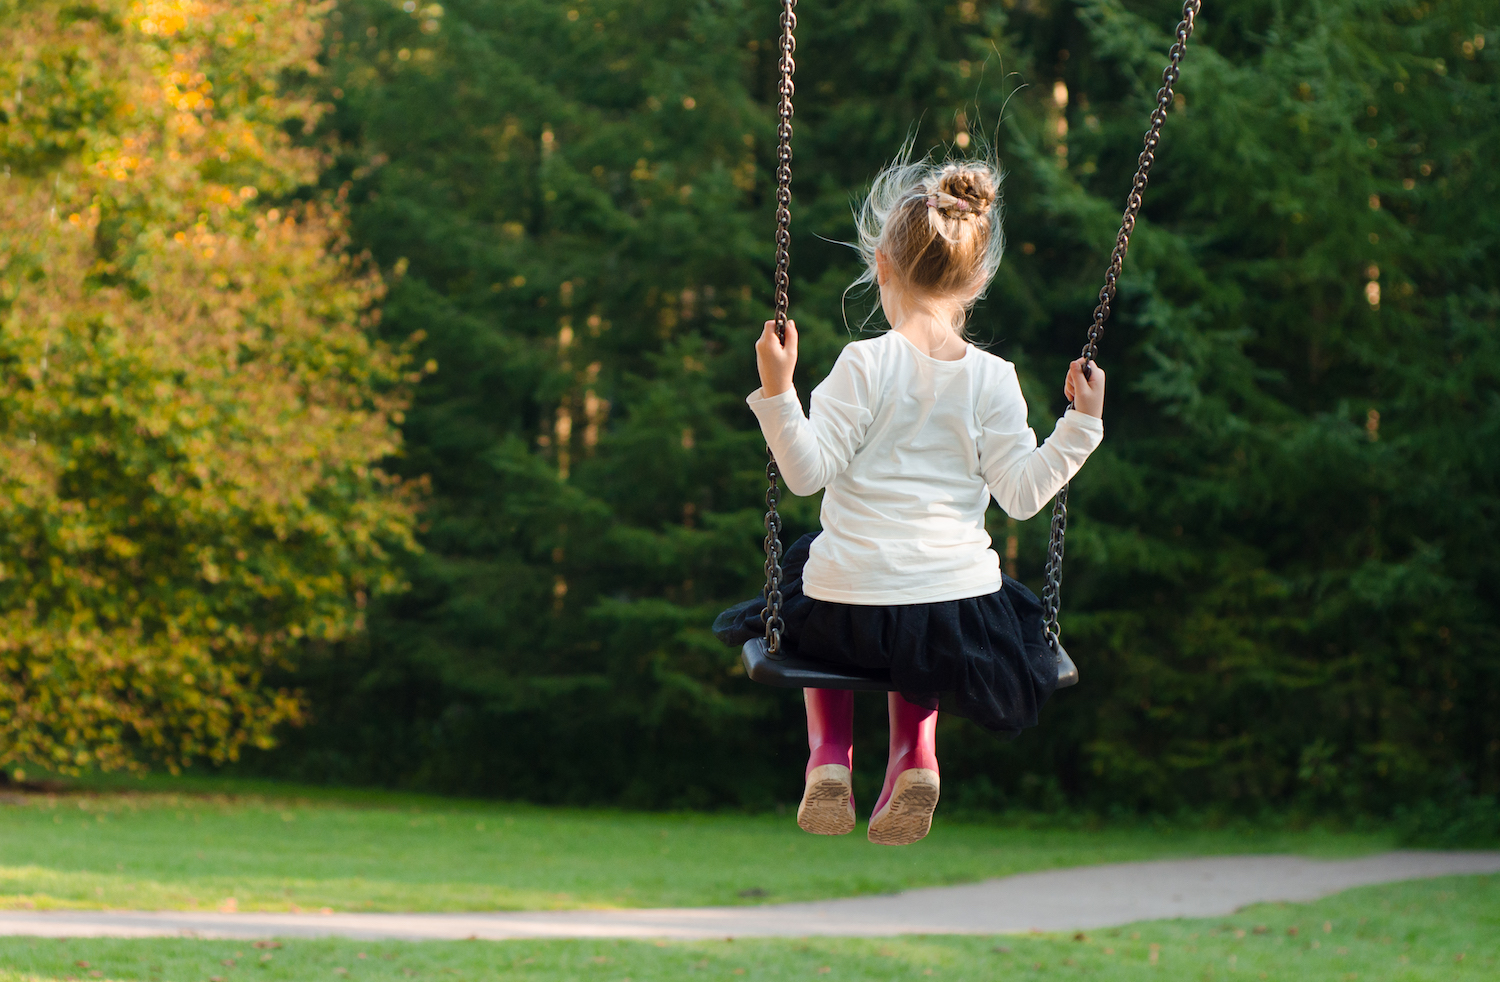 Child swinging at a park